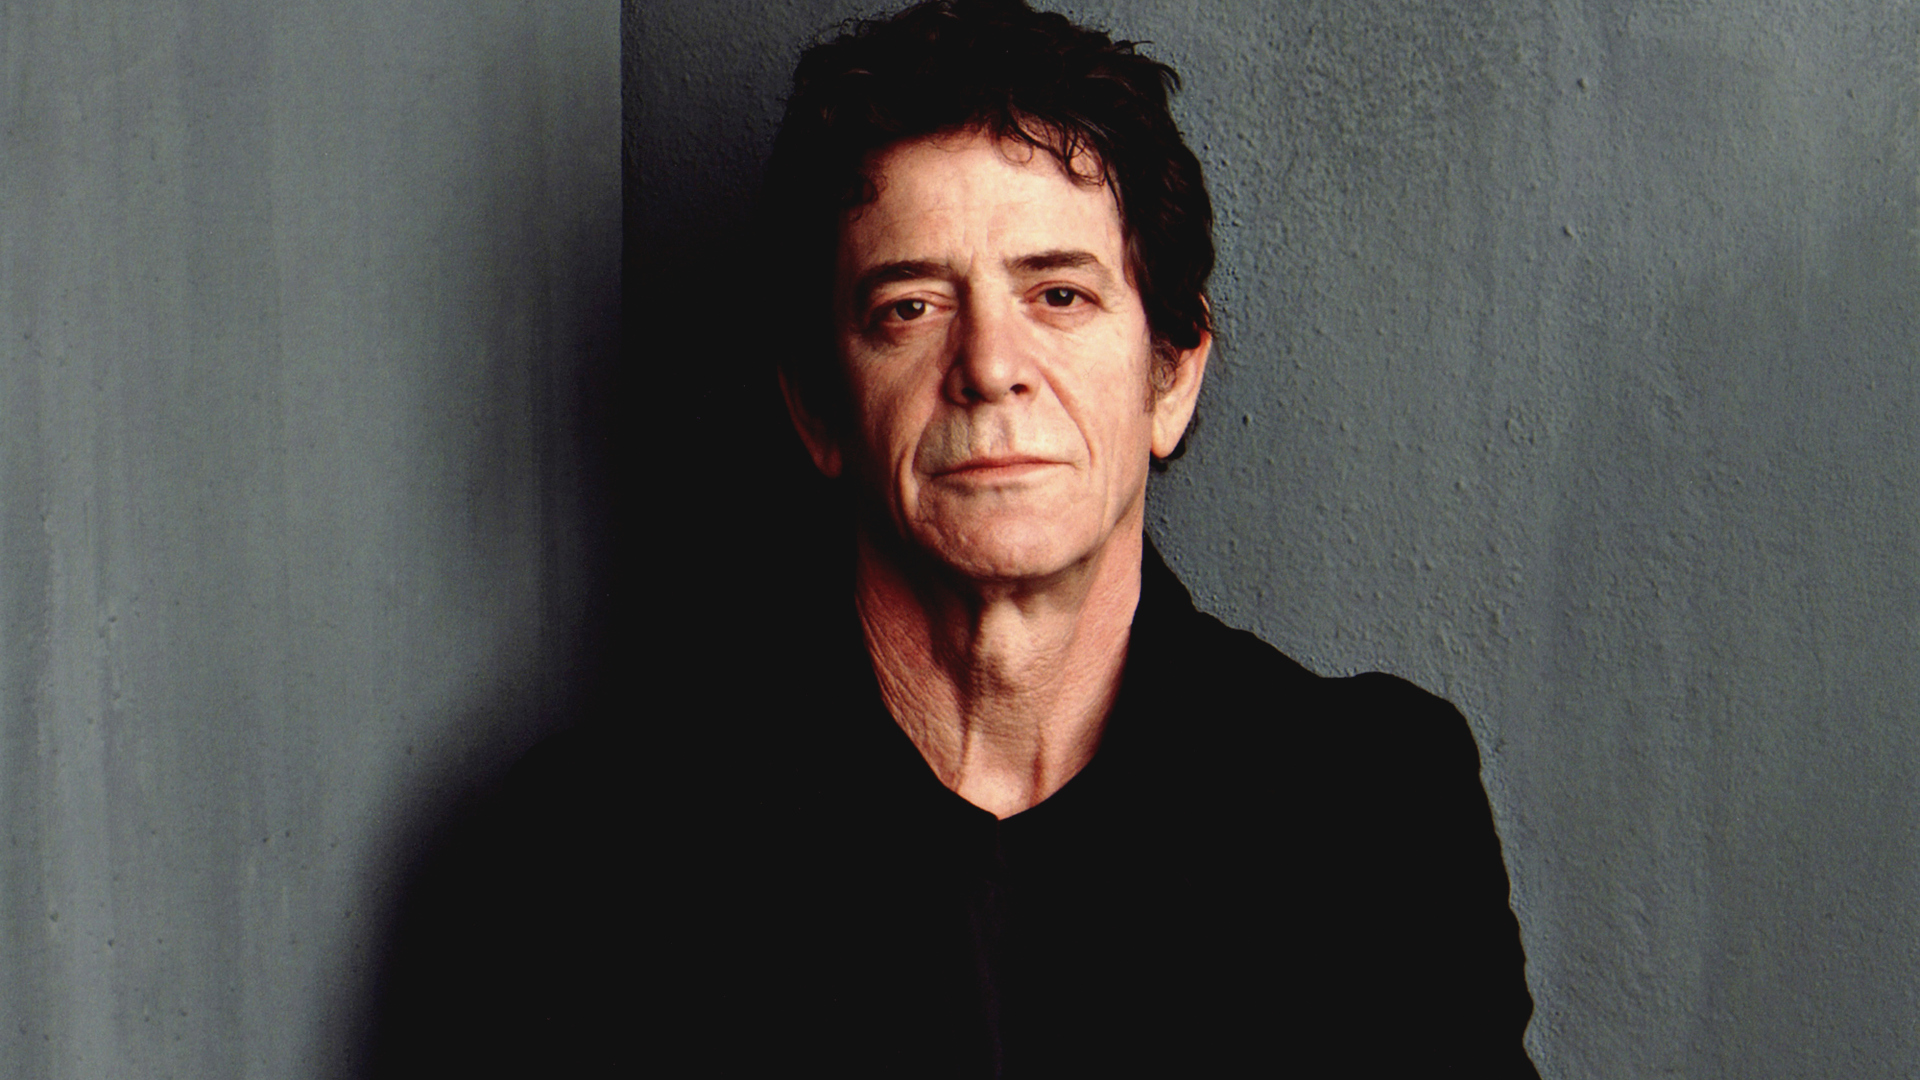 Walk On The Wild Side av Lou Reed